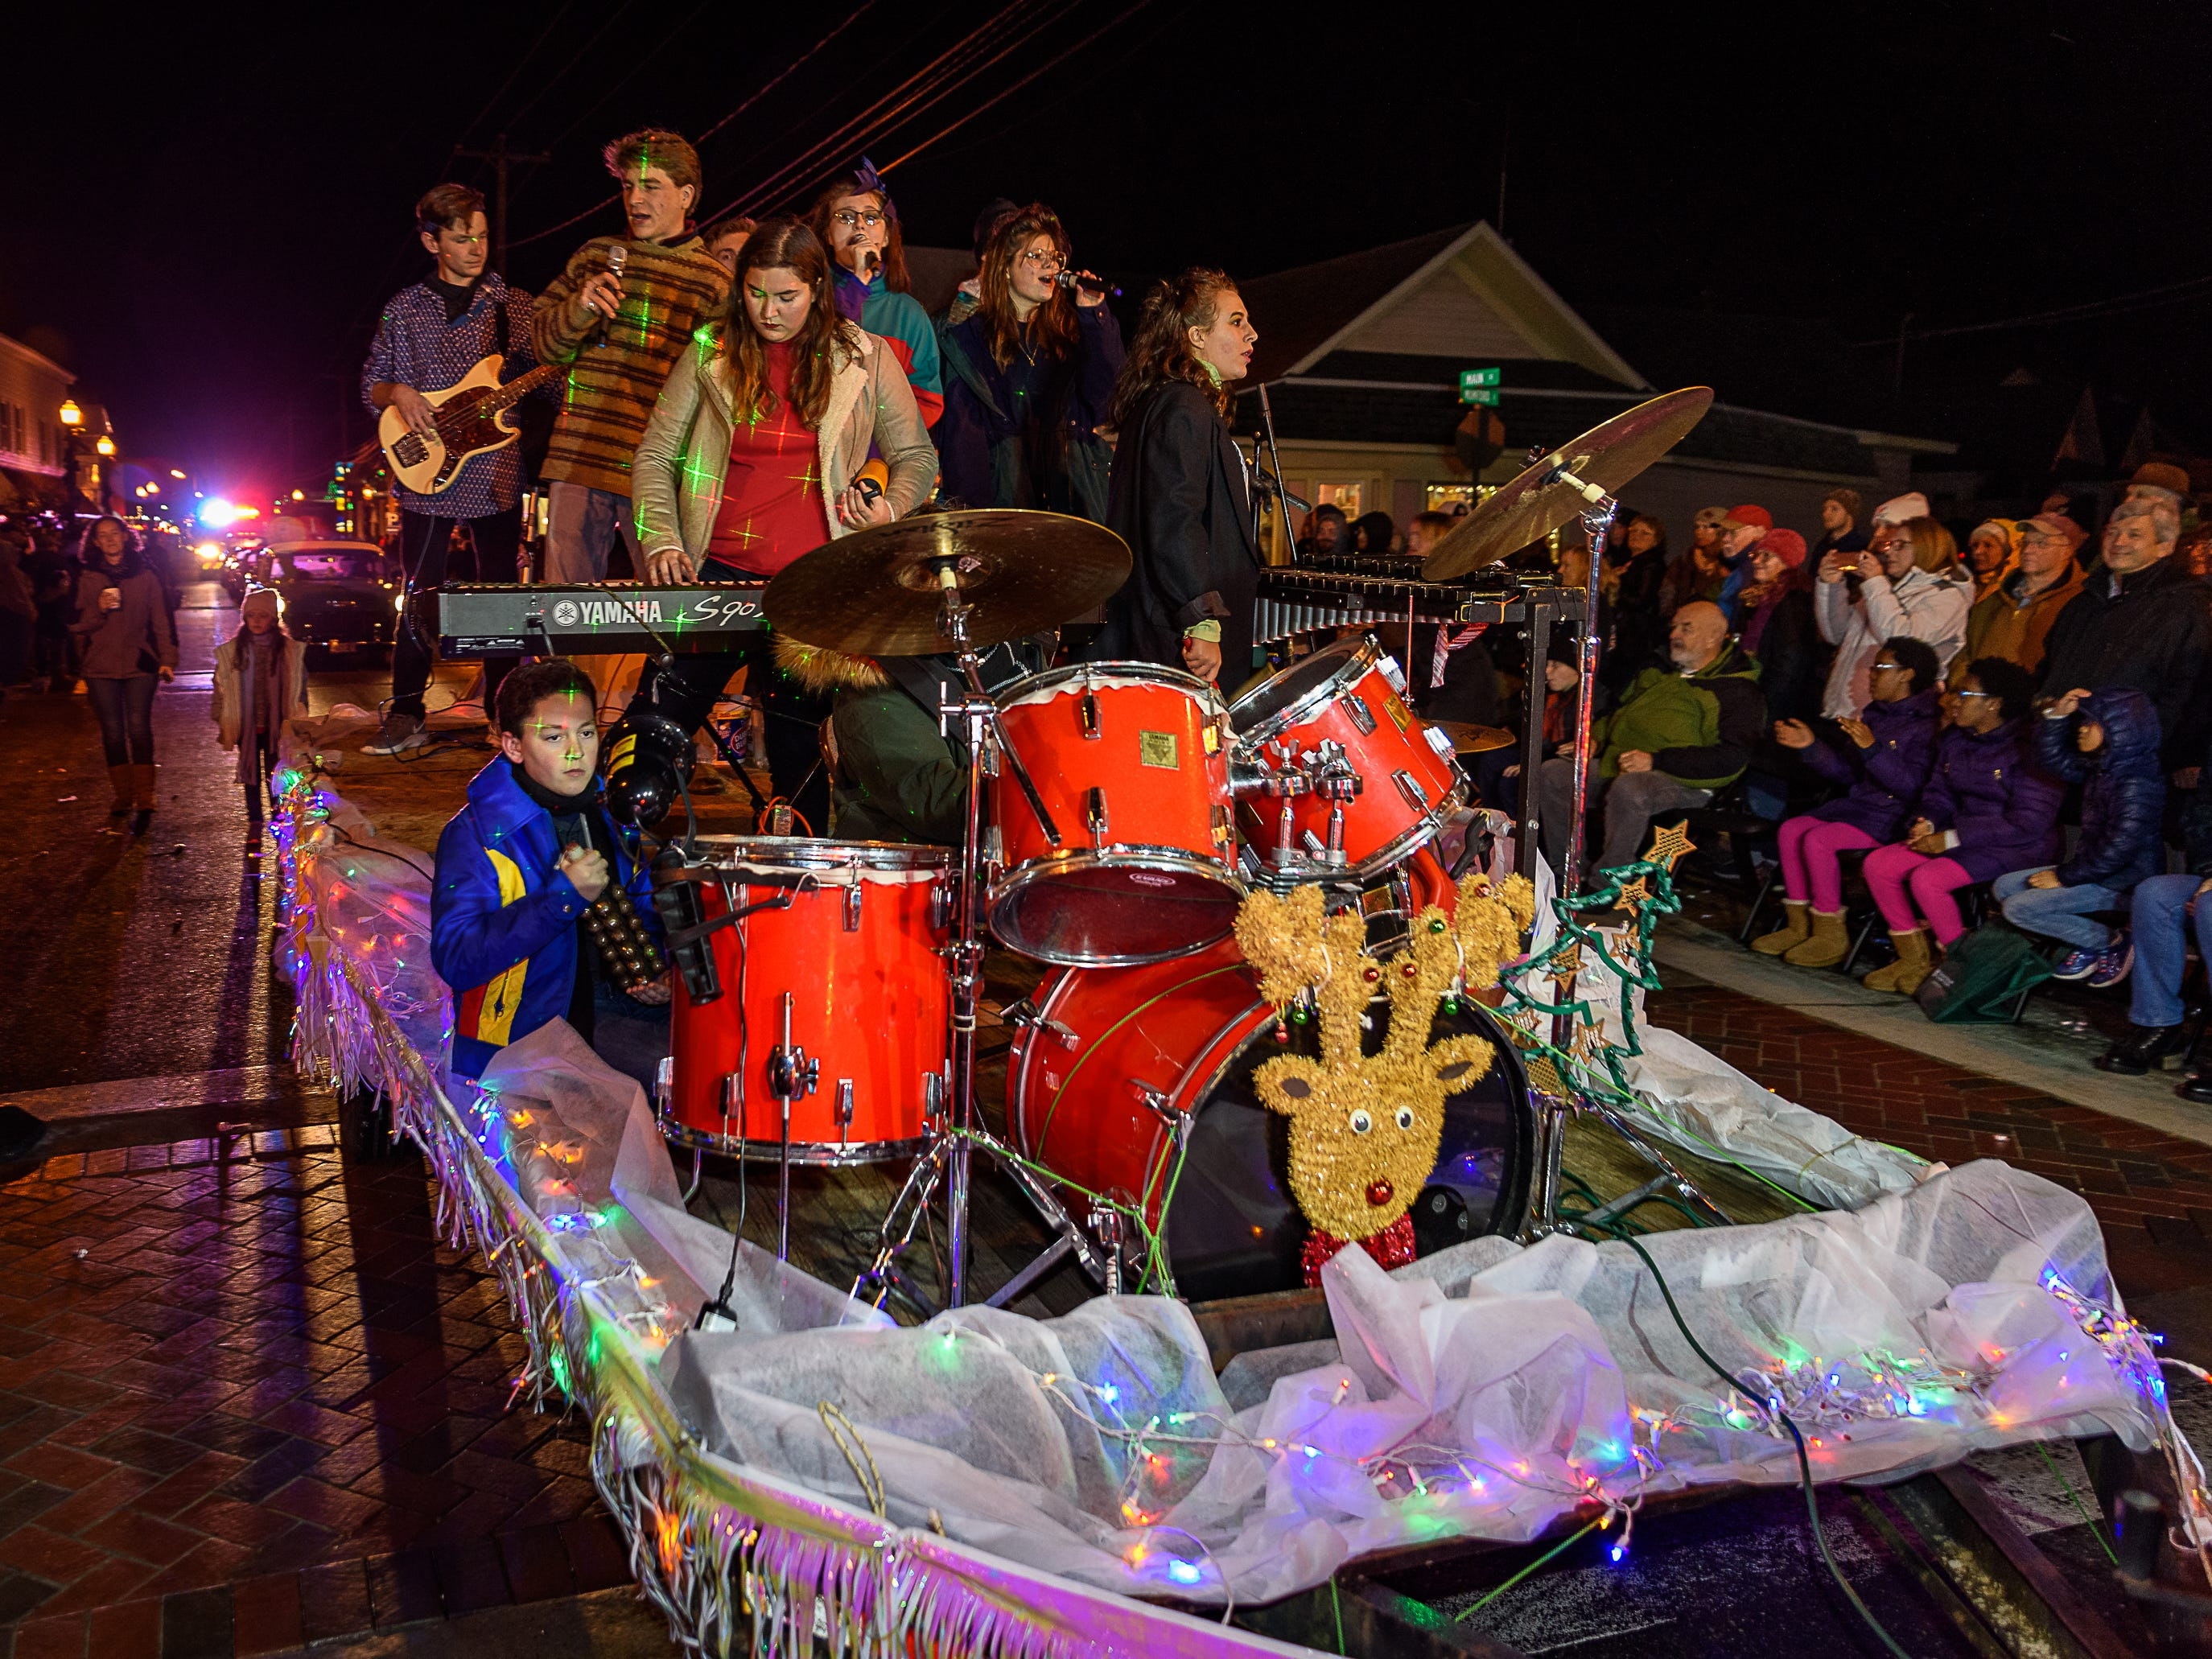 Members of the Chincoteague High School band ride on a float during the annual Christmas parade.